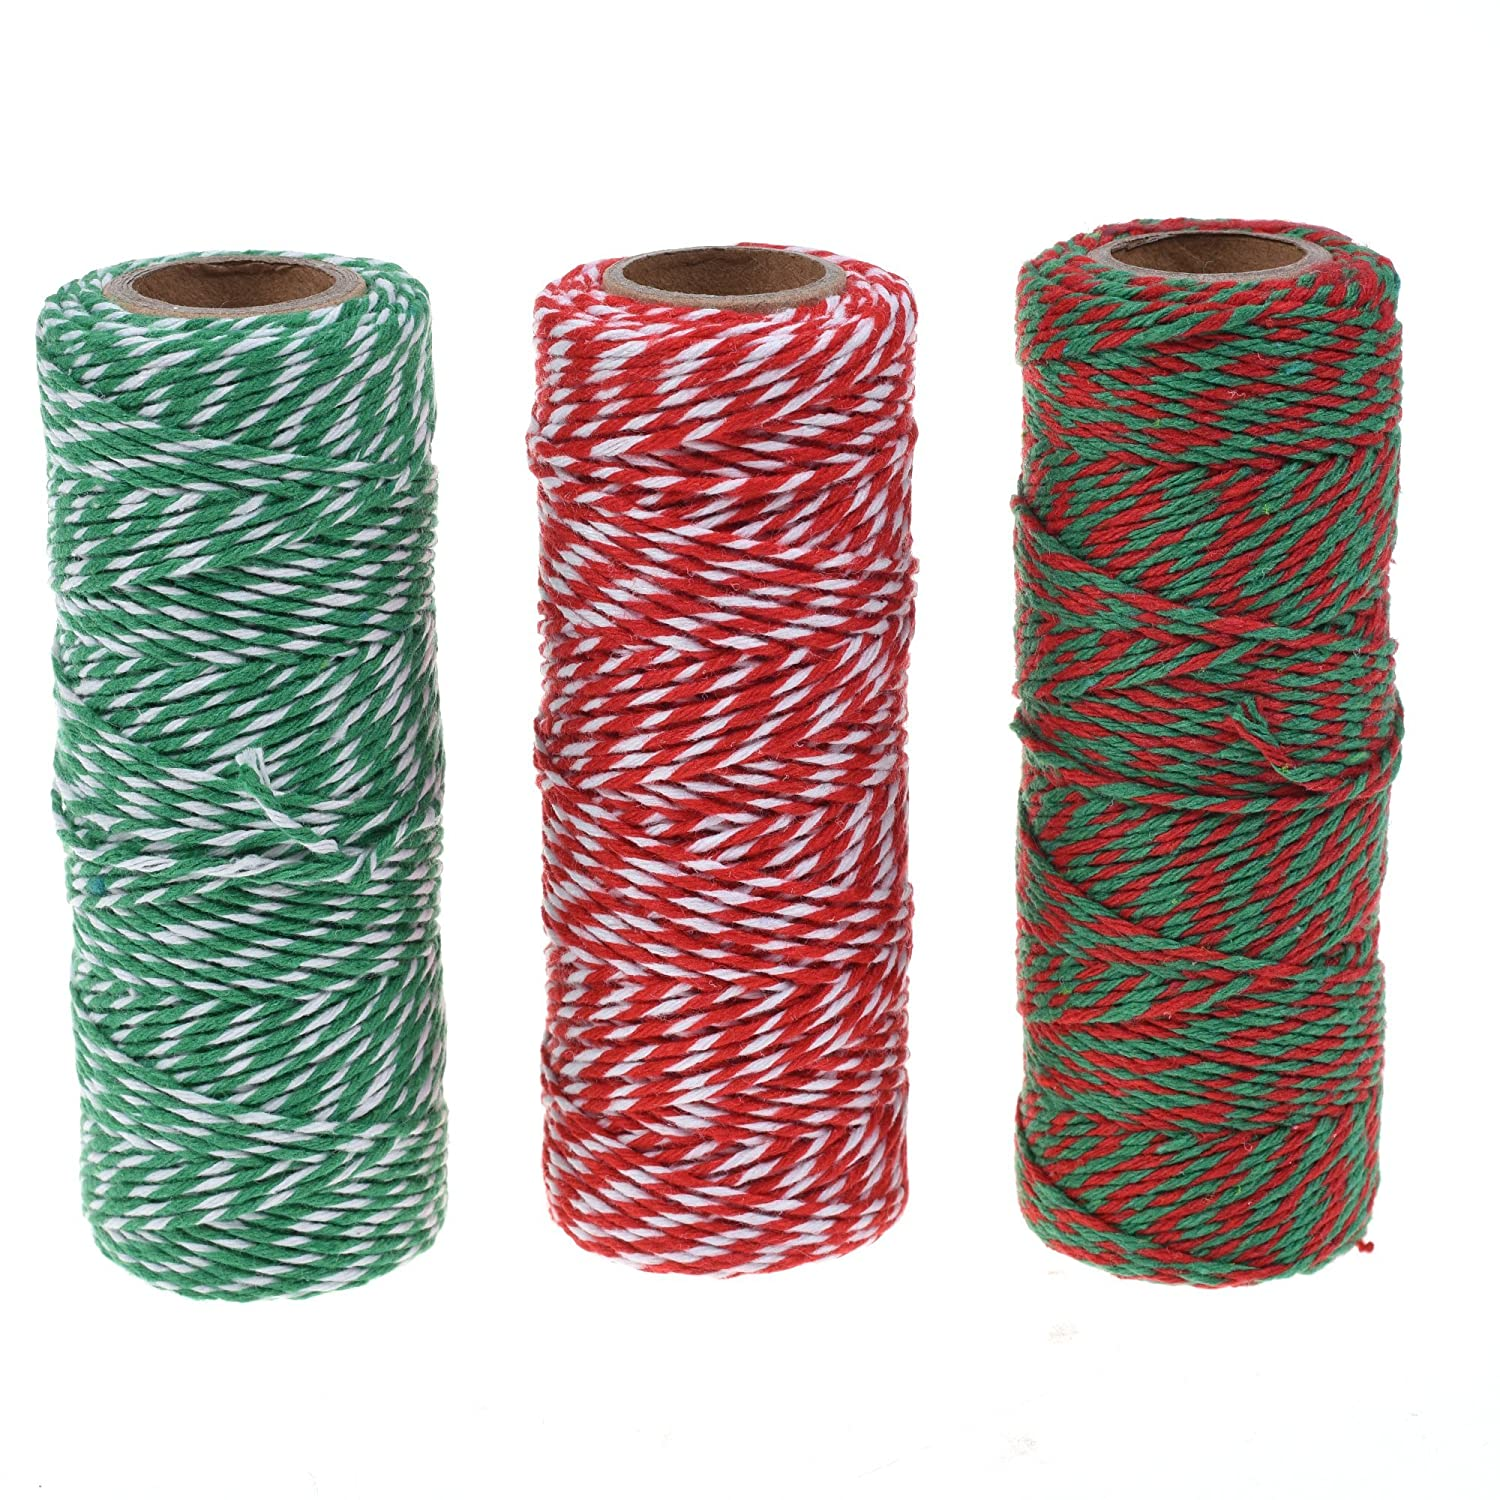 Cosmos ® Cotton Baker's Twine Cording, 3 Roll Assorted Colors 4336807571